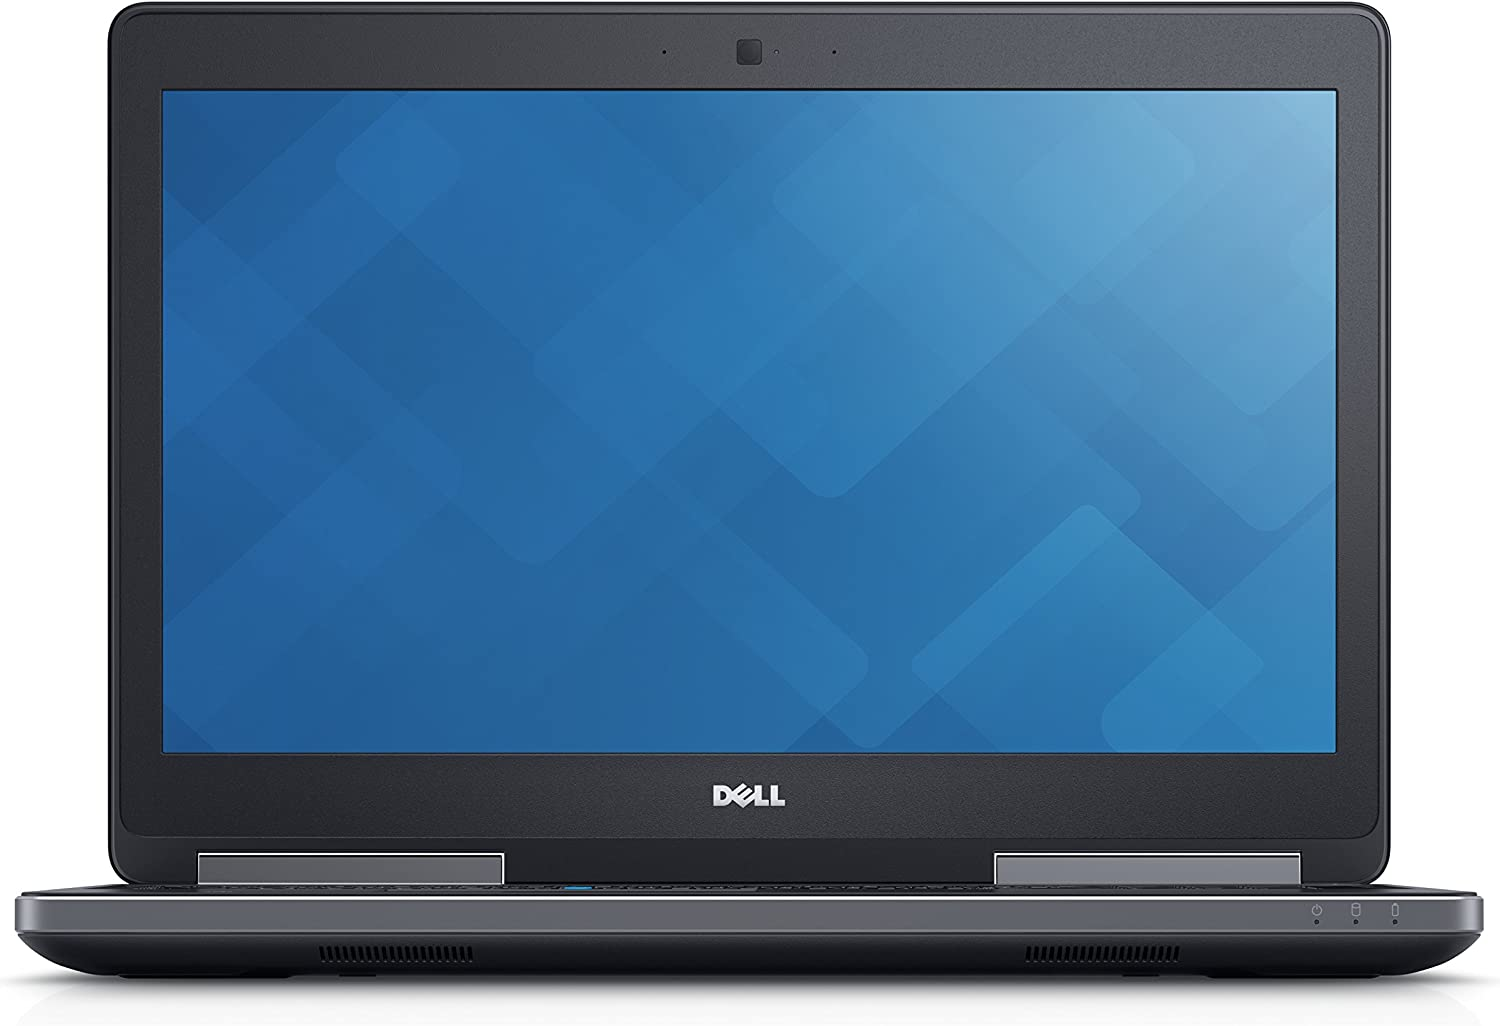 Dell Precision 15 M7520 FHD i7-7820HQ 32GB 512GB SSD AMD WX4130 4GB 10 PRO